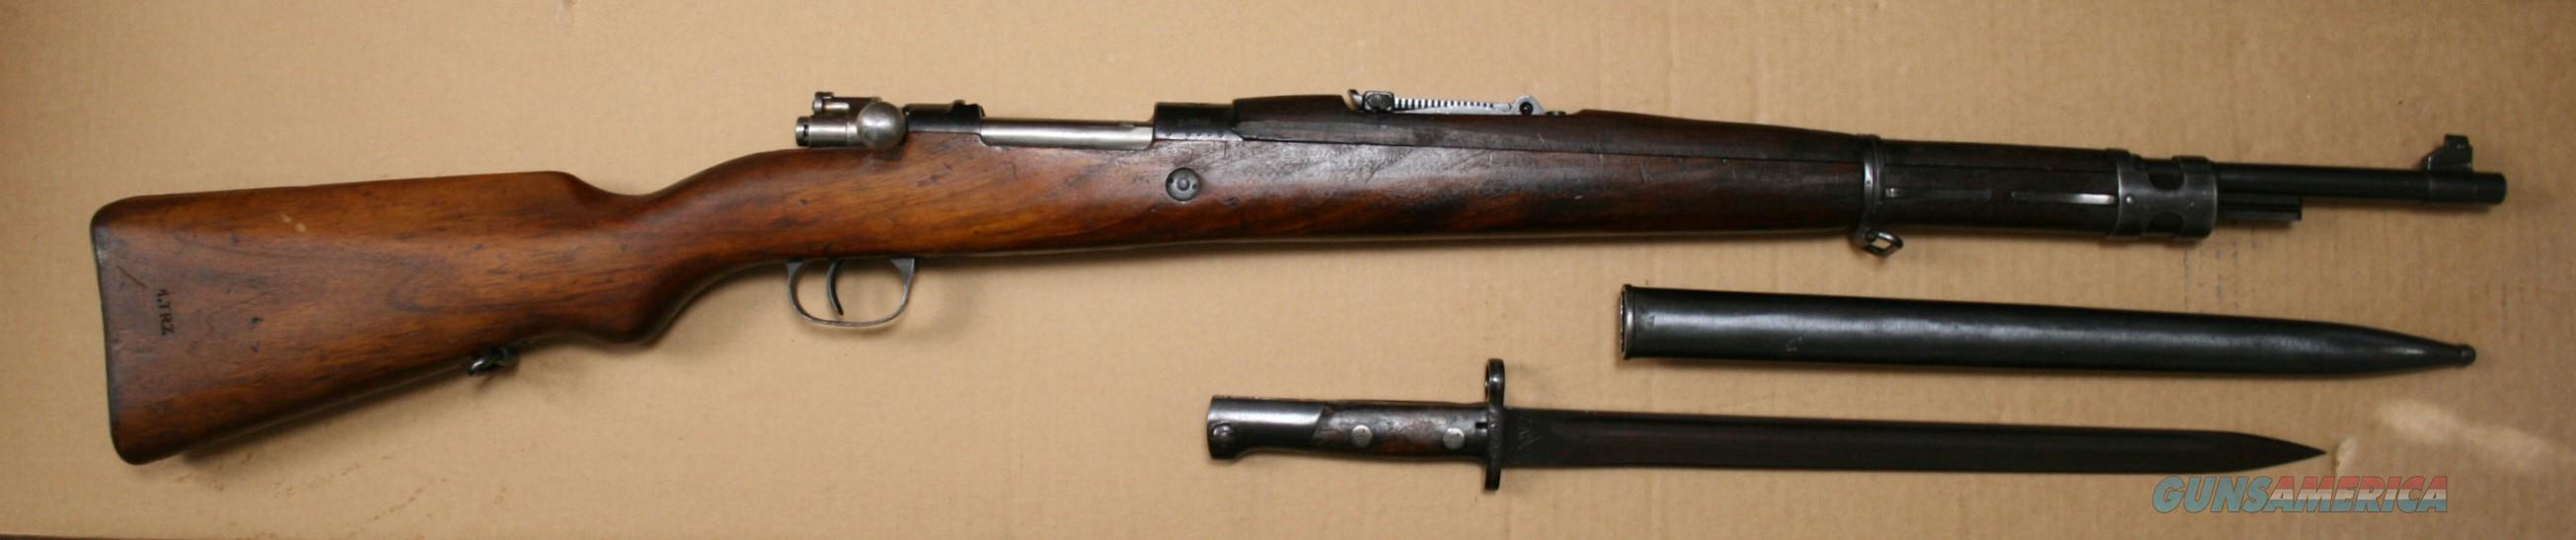 Yugoslavian M24/47 Mauser Straight Bolt Cal. 8 mm Rifle w/Bayonet  Guns > Rifles > Zastava Arms